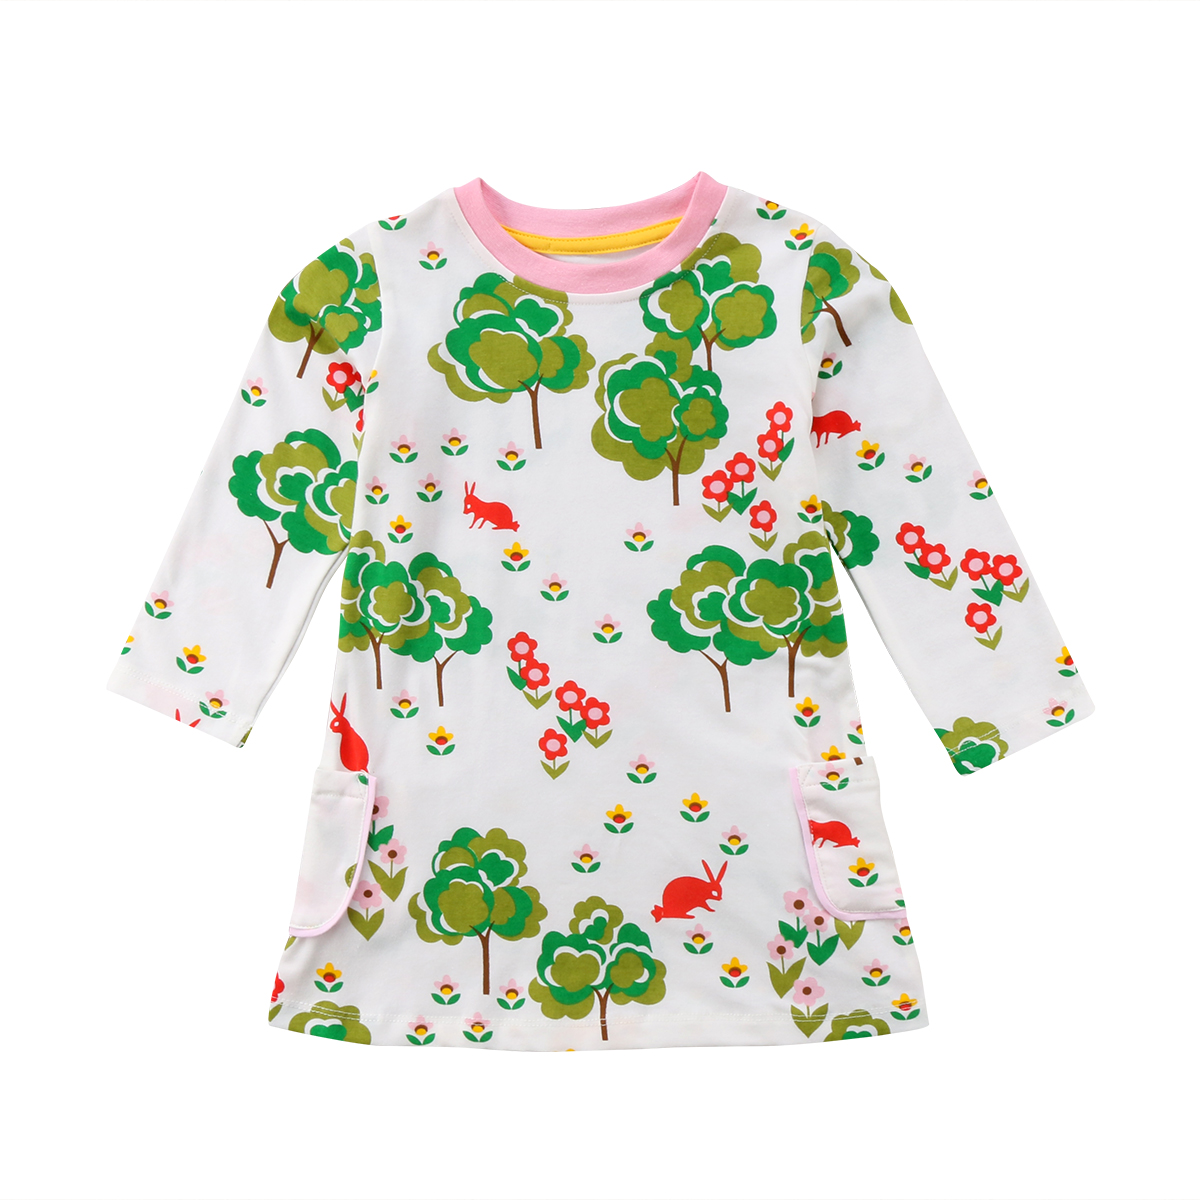 Kids Baby Girl Clothing Floral Party Prom Pageant Long Sleeve Cotton Mini Cute Dress With Dual Pocket Clothes Girls cute long sleeve parrot print girl s mini dress